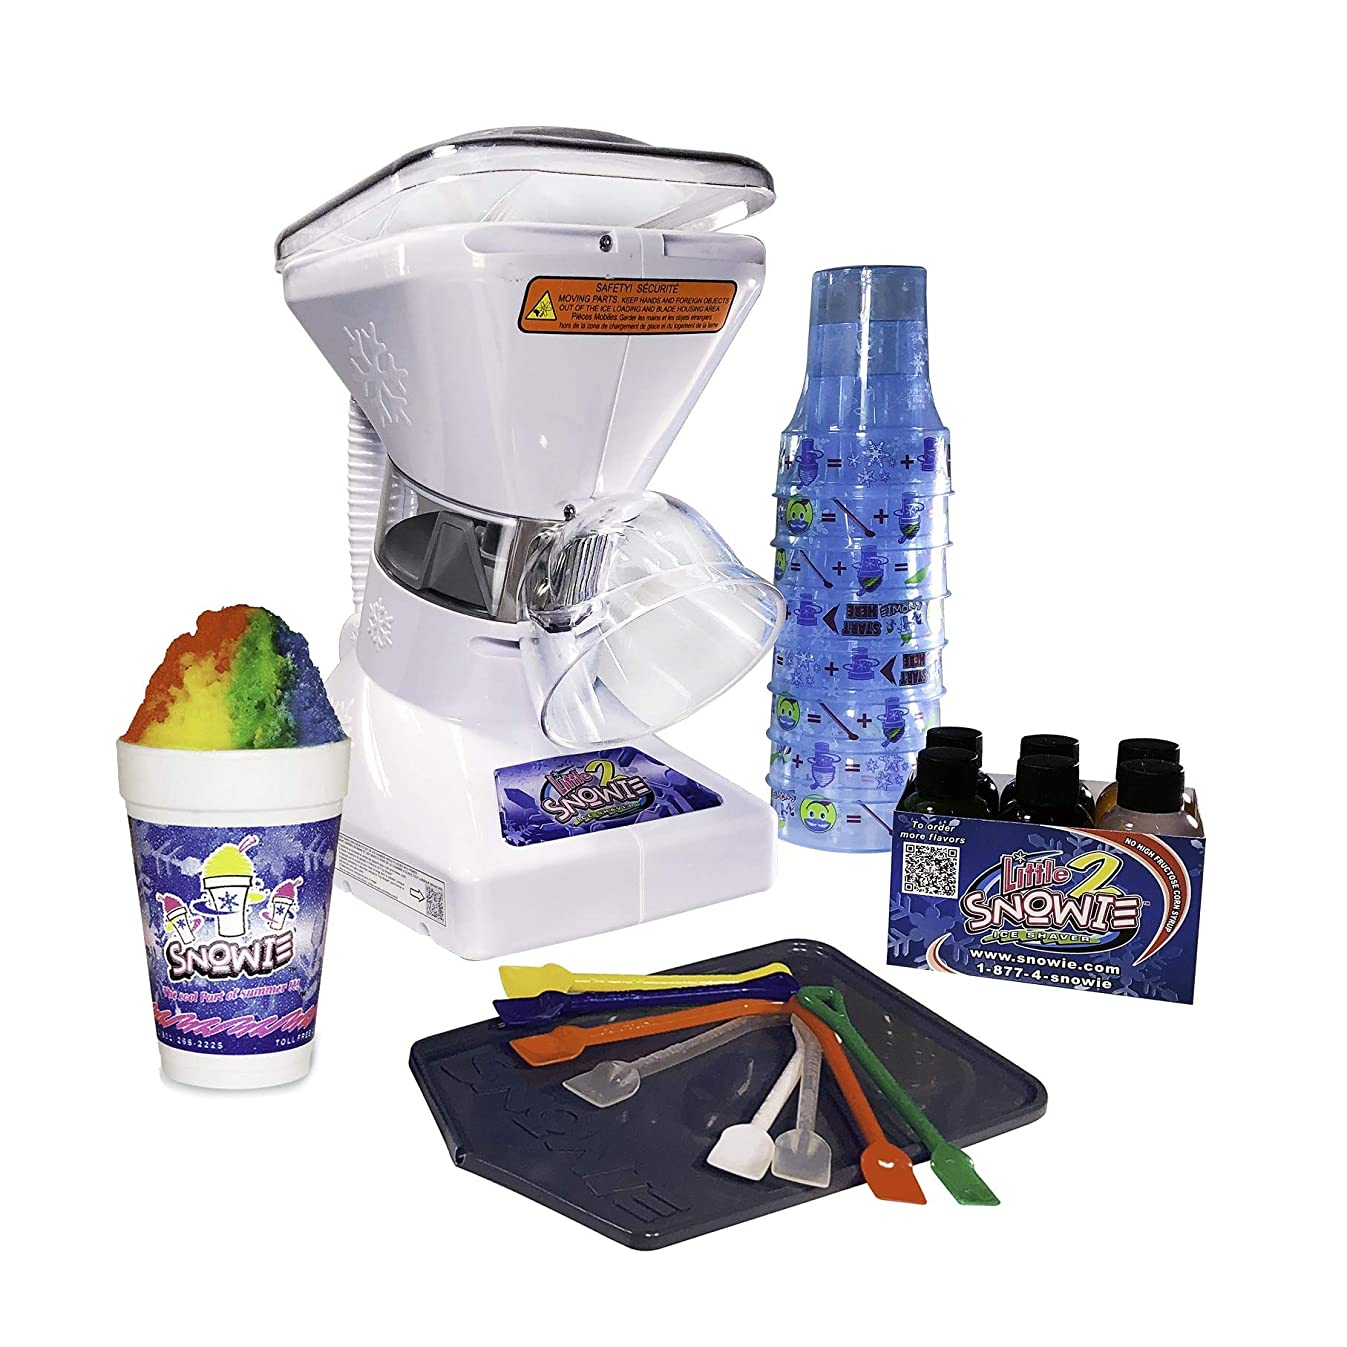 Little Snowie 2 Ice Shaver Bundle - Premium Shaved Ice Machine and Snow Cone Machine with Syrup Samples, Drip Pan, Souvenir Cups and Spoons